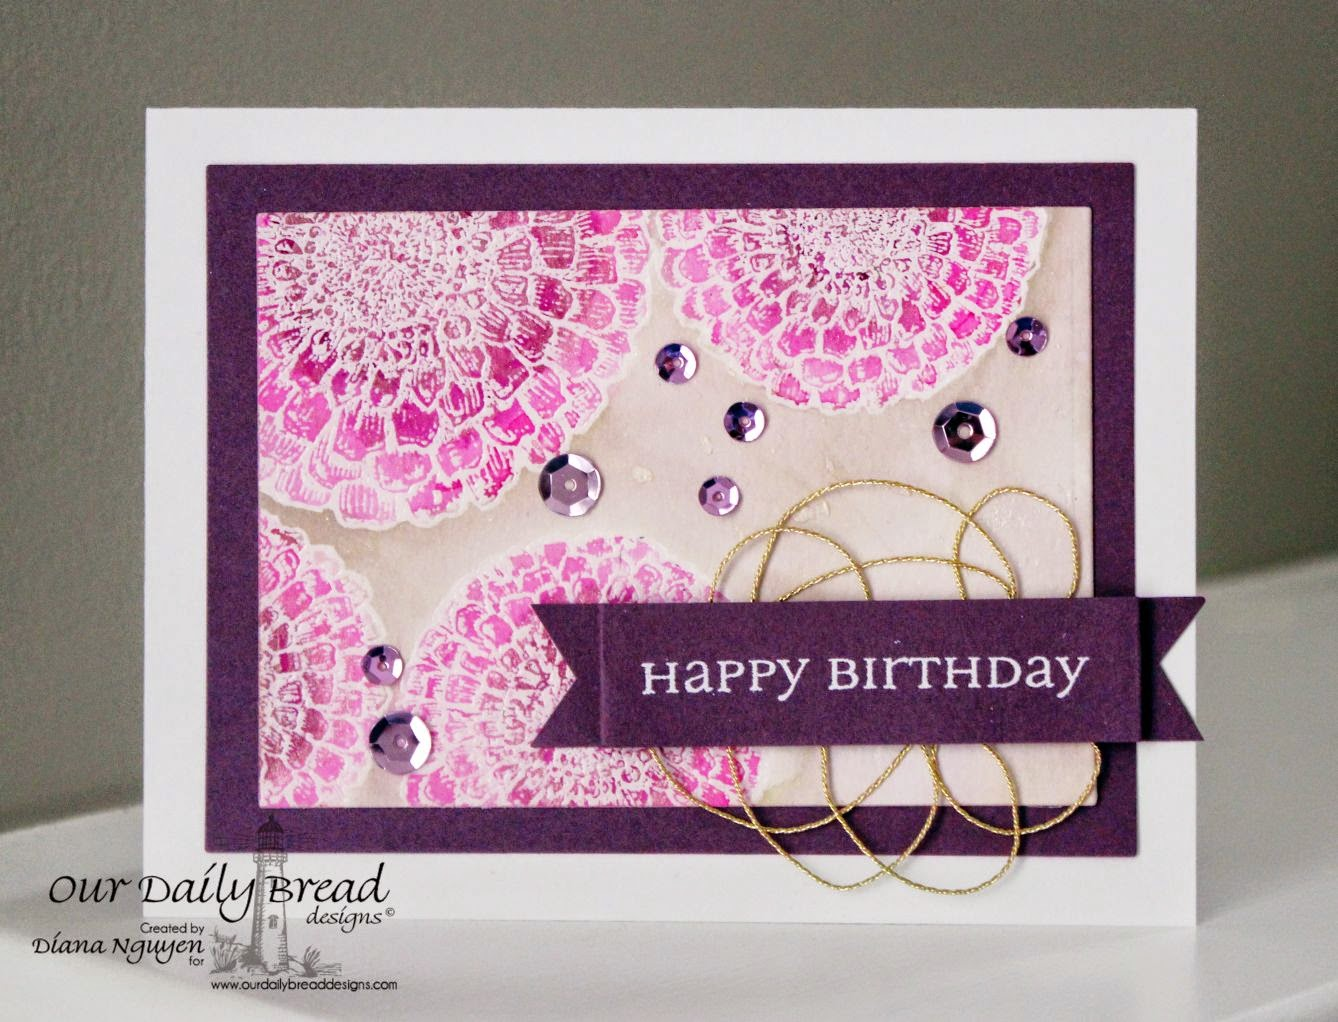 Diana Nguyen, Our Daily Bread designs, All Occassions Sentiments, Birthday, Zinnias, sequins